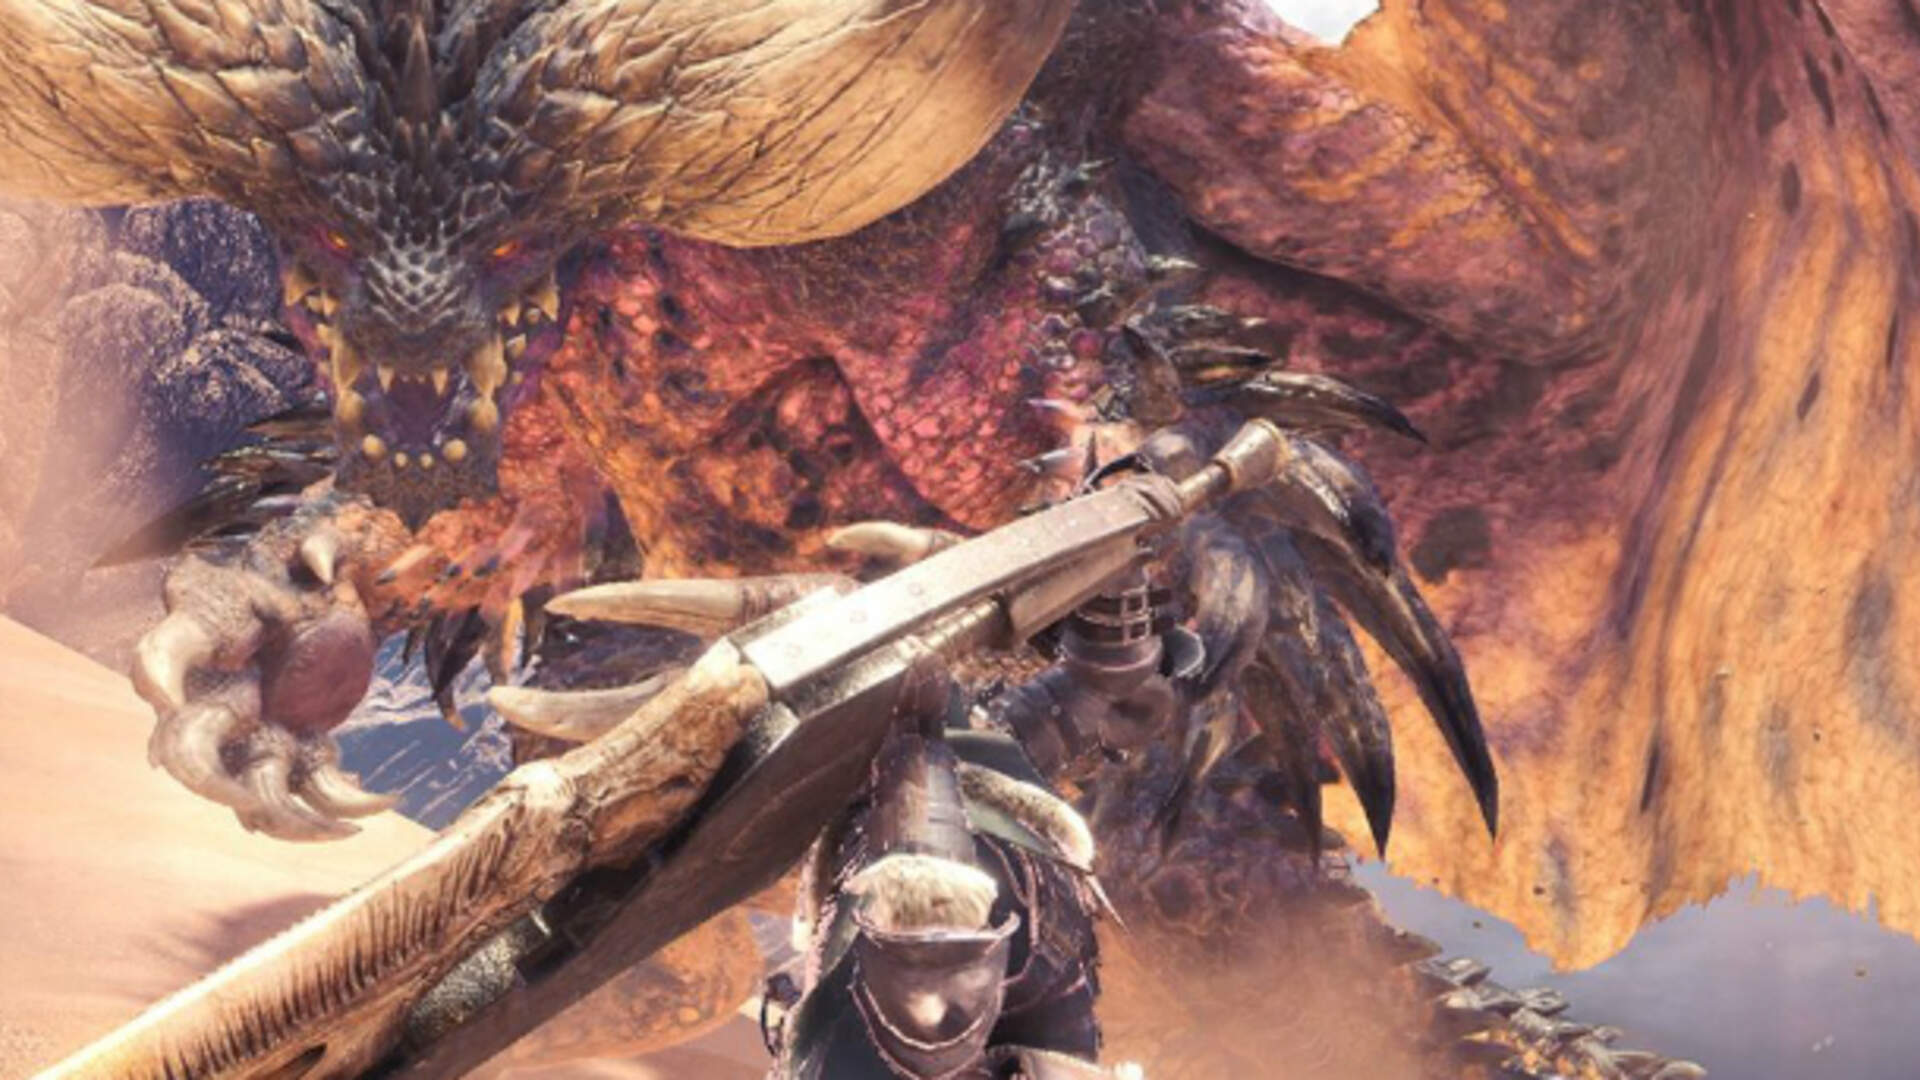 Skyrim dev Wants to Port Monster Hunter: World to Switch